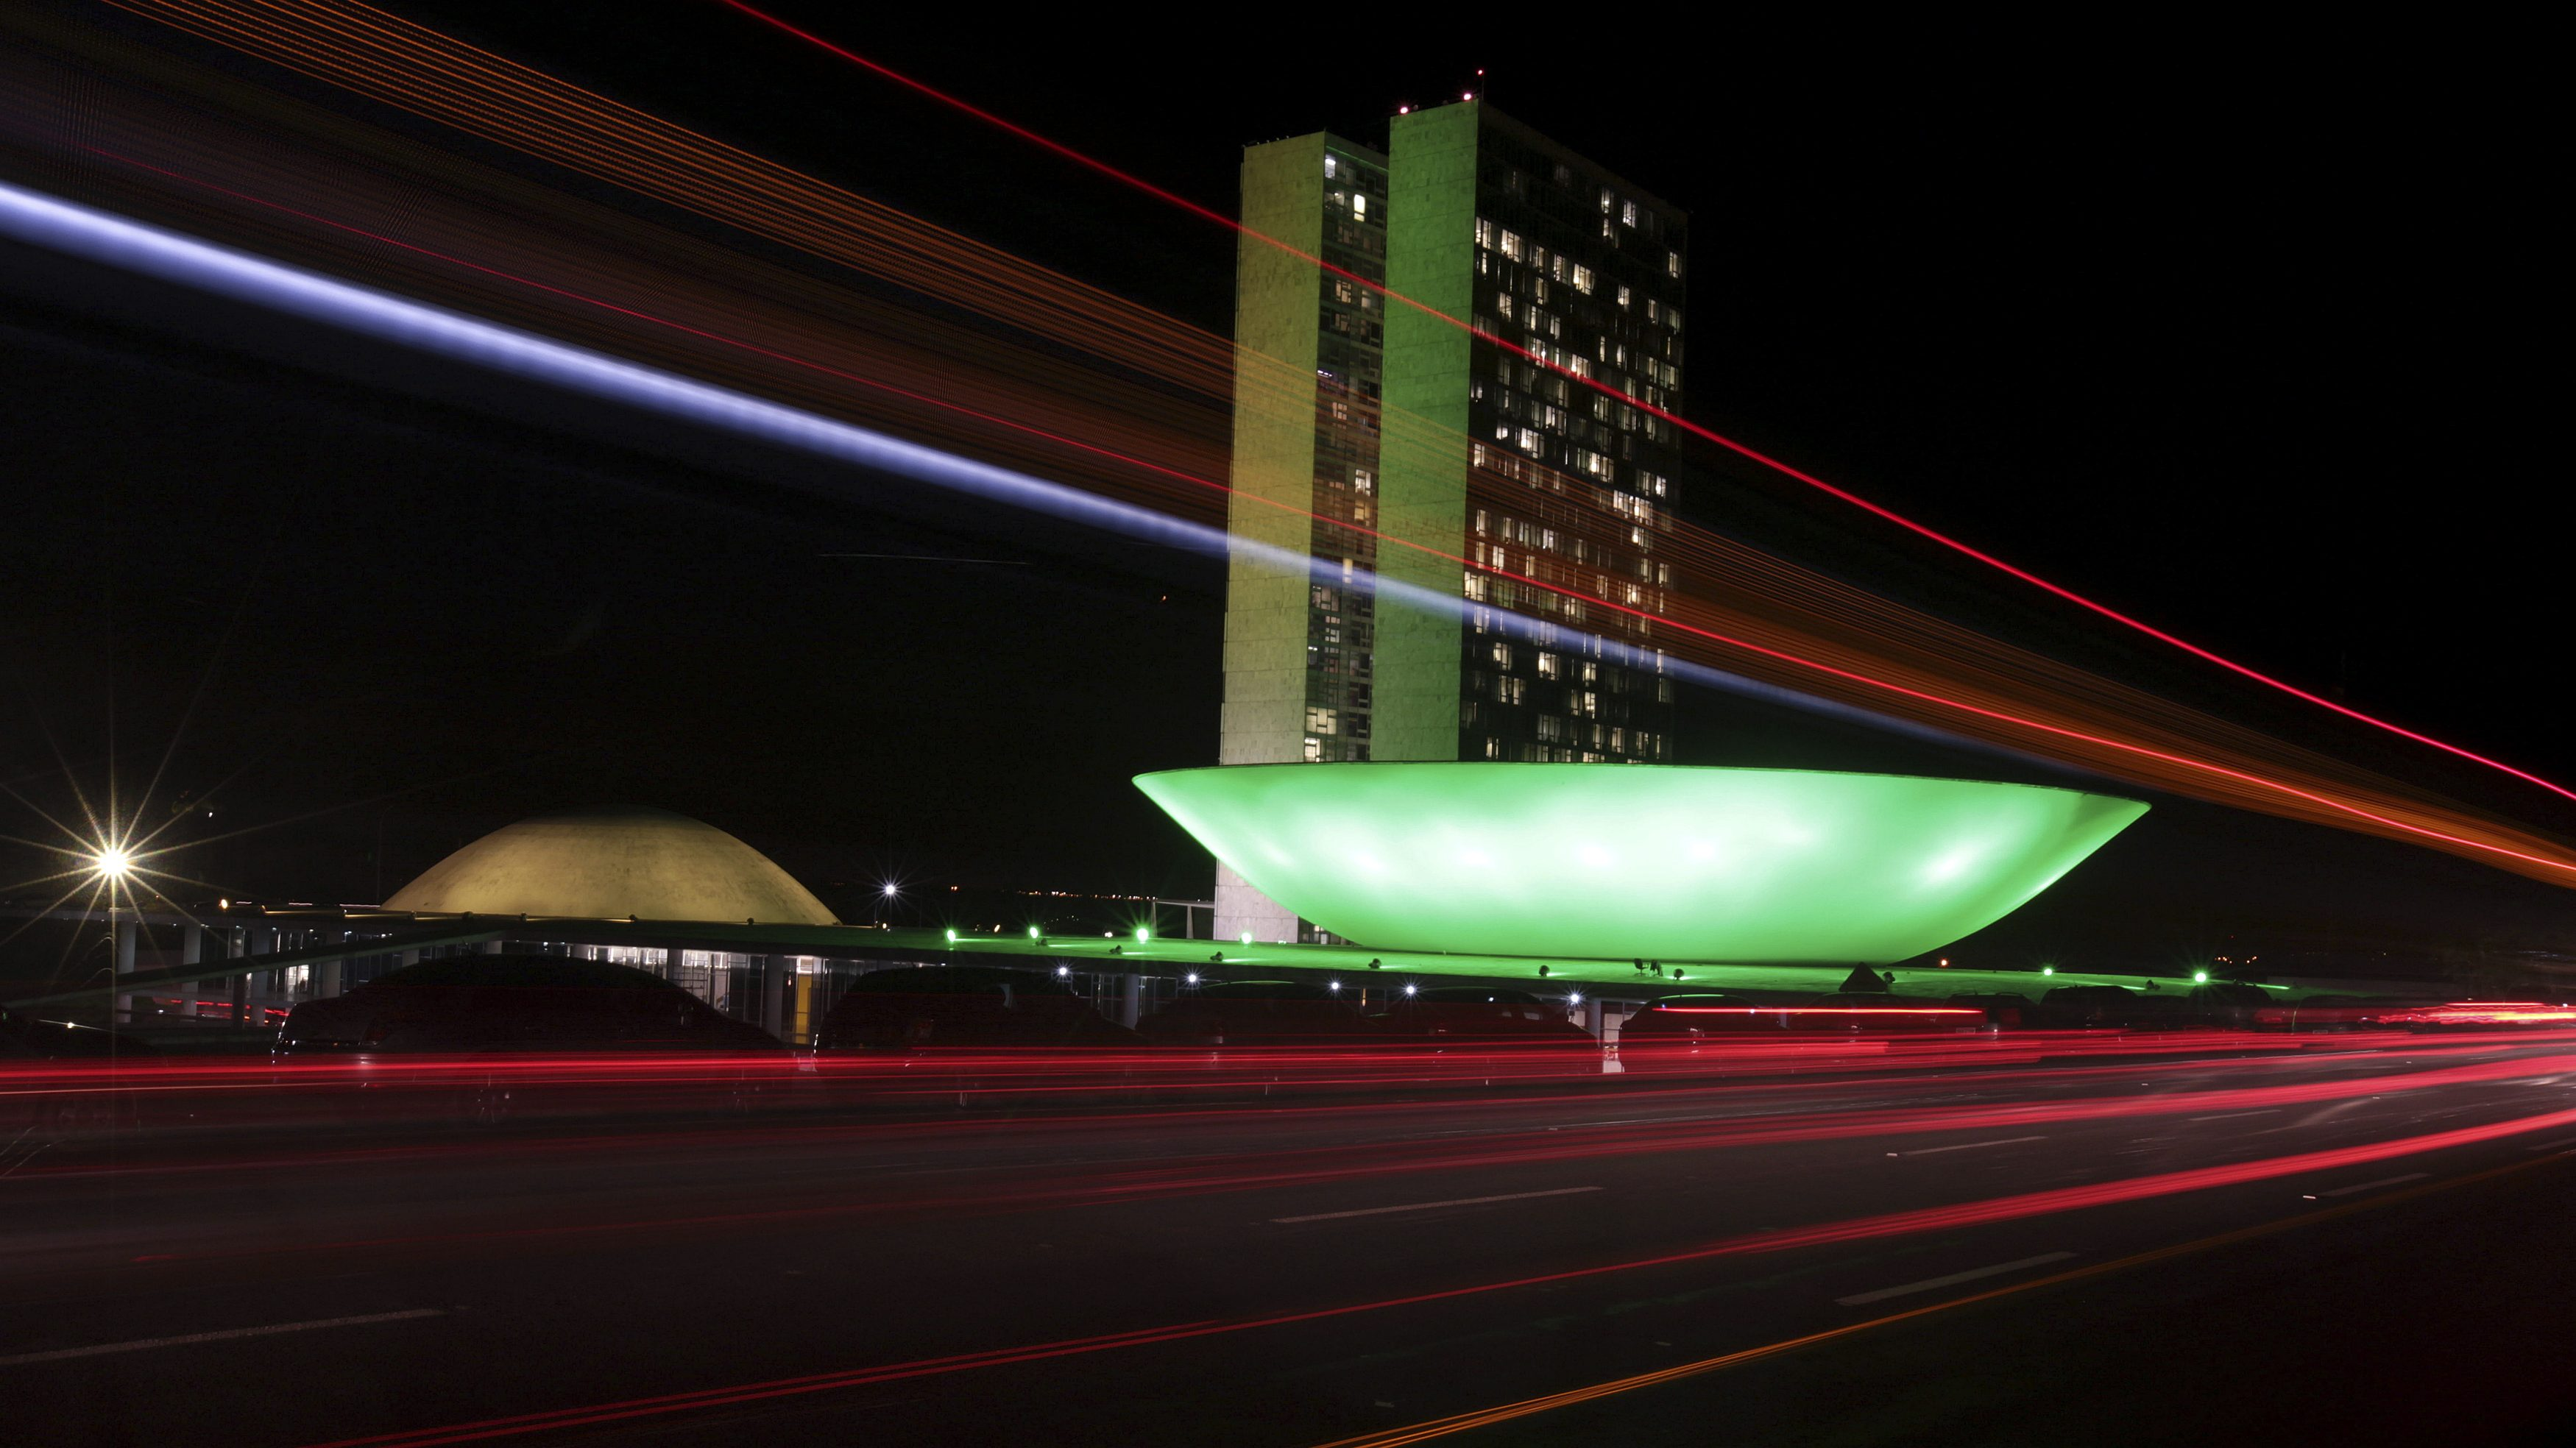 The Brazilian congress is lit up in the colours of the Brazilian national flag ahead of the 2014 World Cup, in Brasilia June 2, 2014.